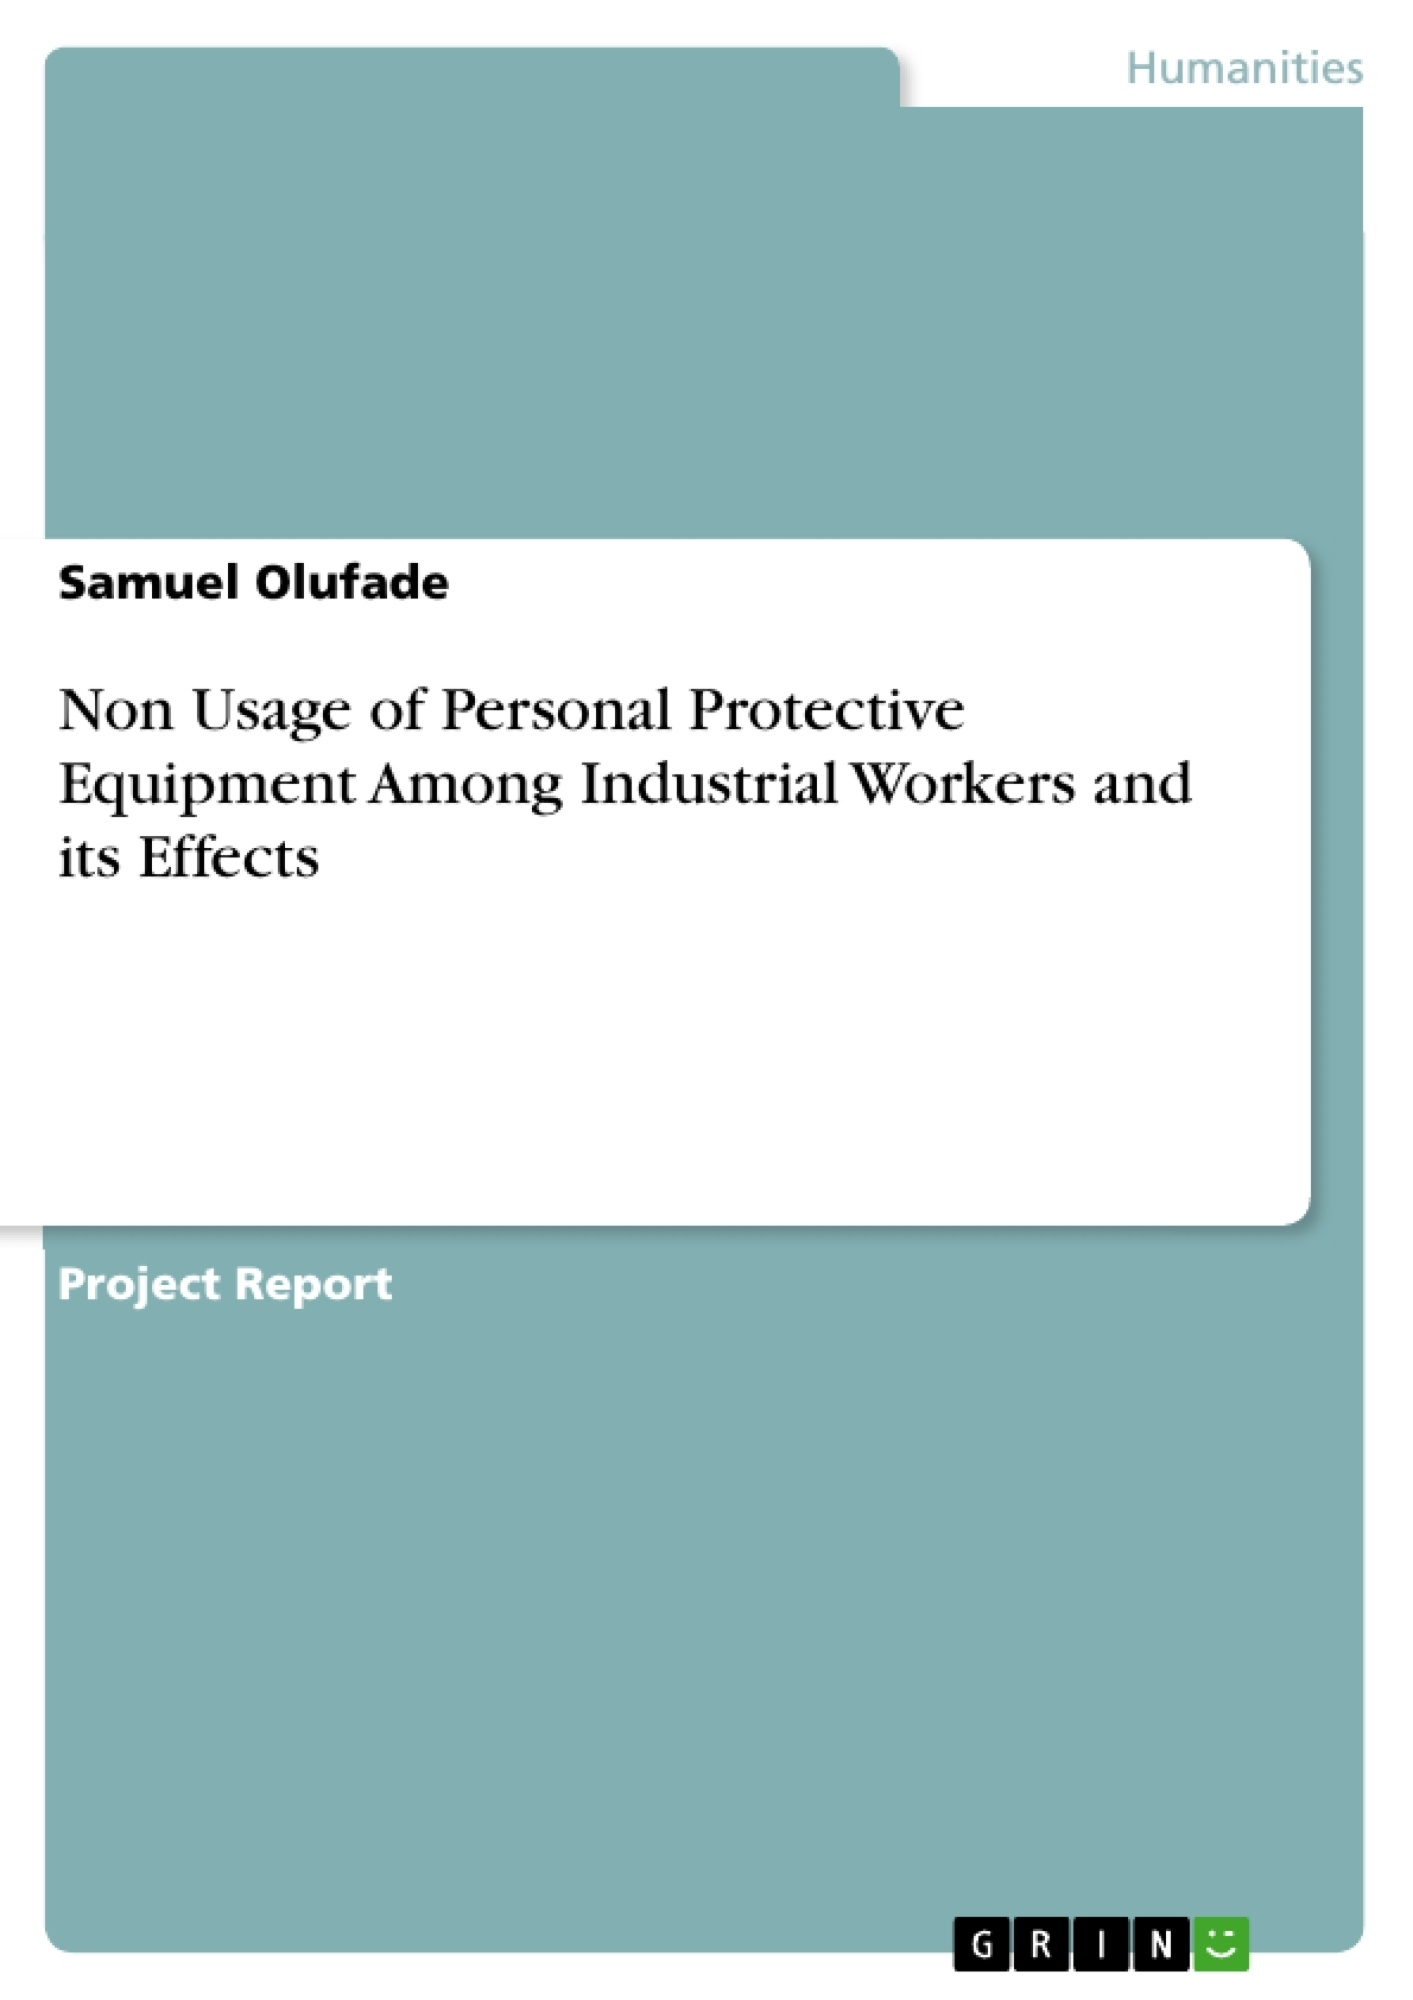 Title: Non Usage of Personal Protective Equipment Among Industrial Workers and its Effects